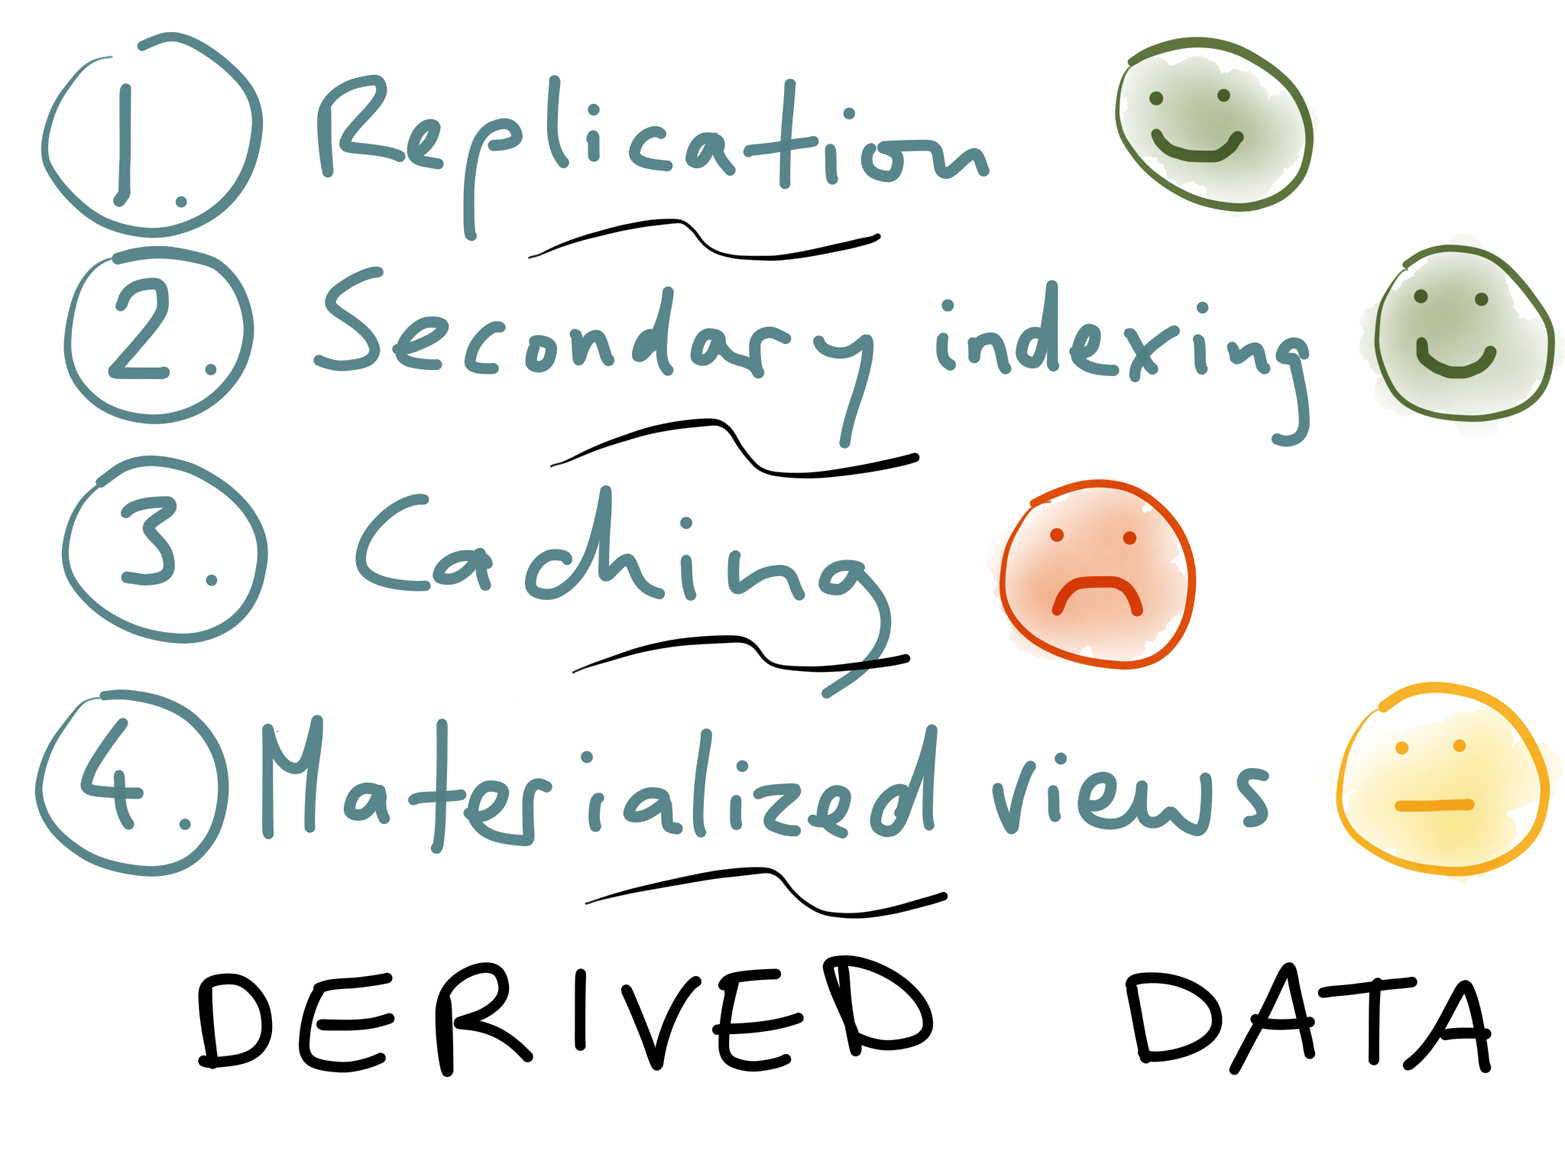 All four aspects of a database deal with derived data.